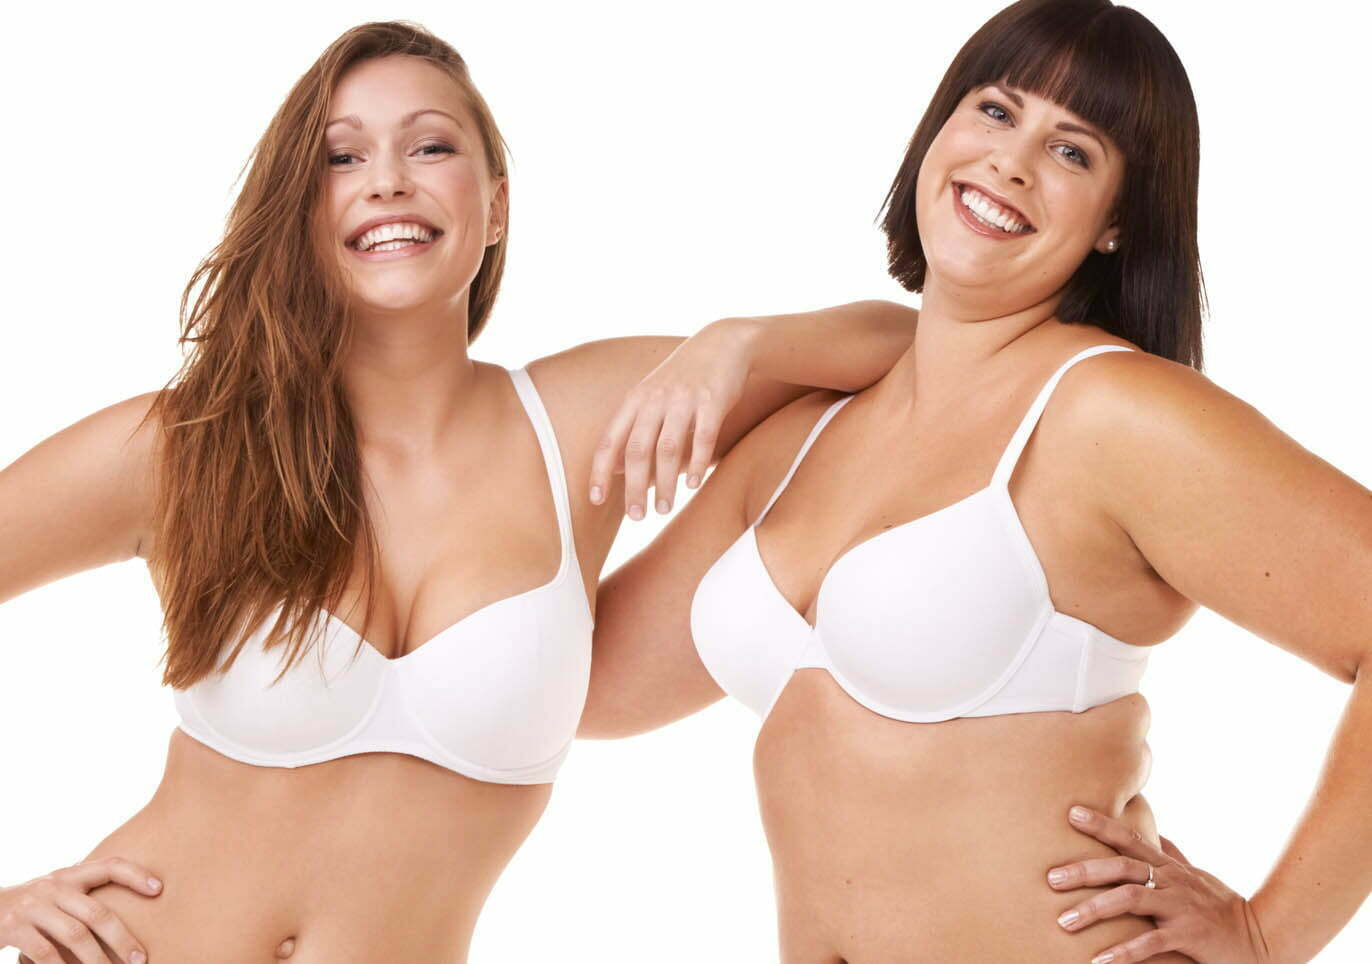 Can I Fix Uneven Breasts Without Implants 5 More Questions